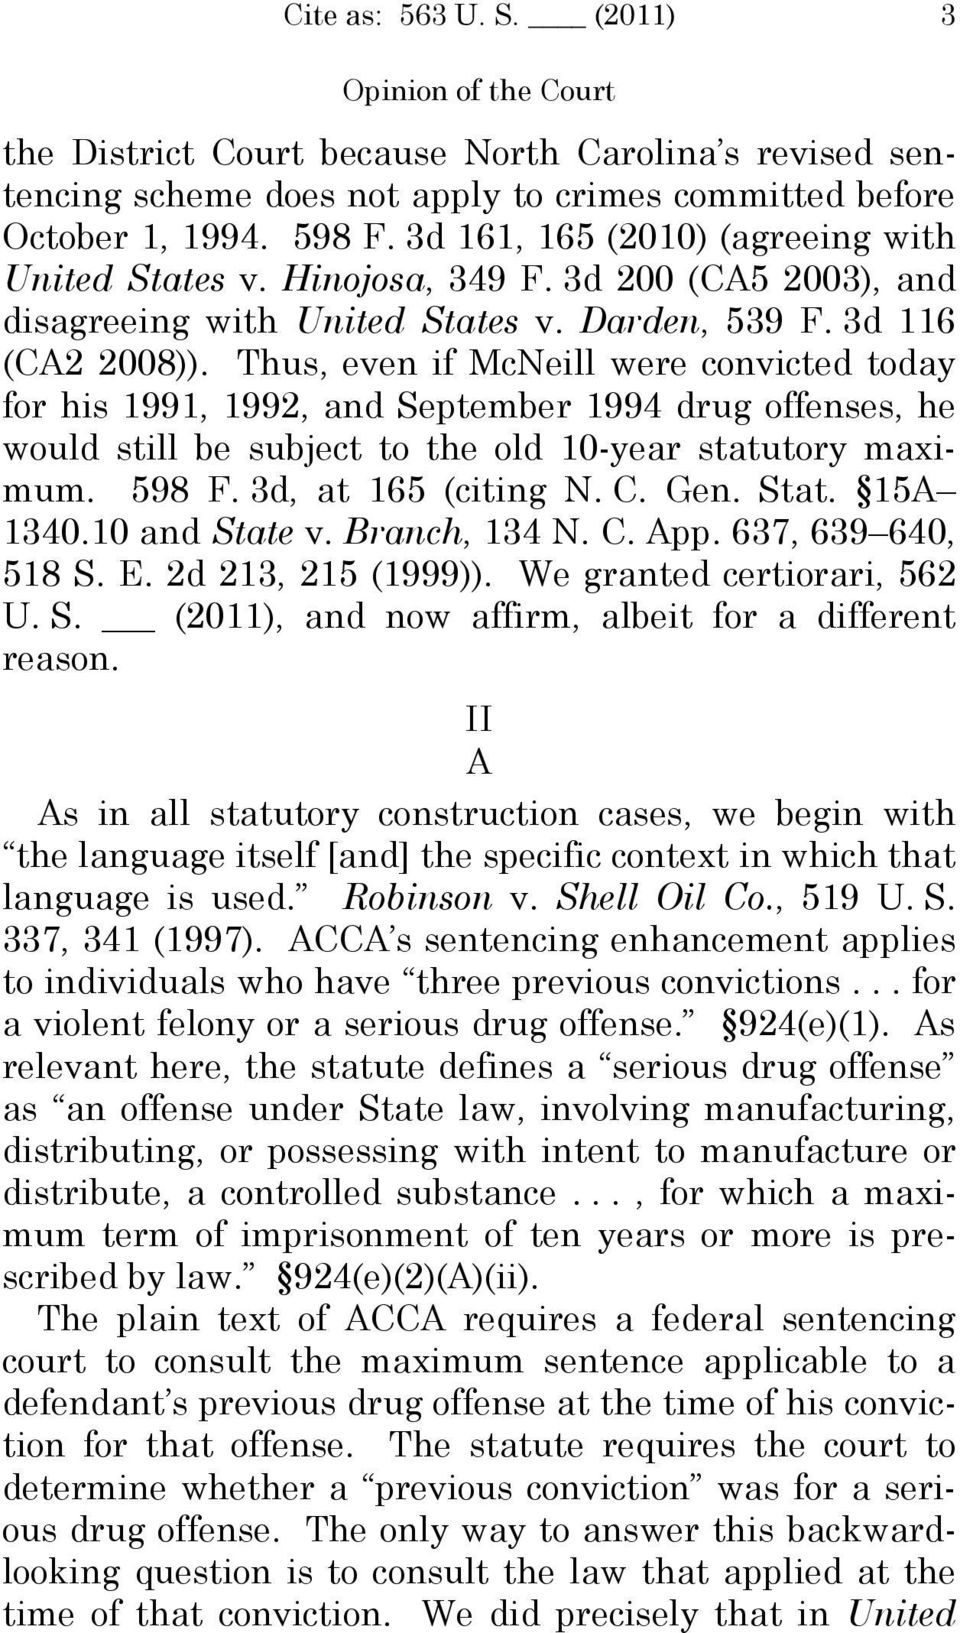 Thus, even if McNeill were convicted today for his 1991, 1992, and September 1994 drug offenses, he would still be subject to the old 10-year statutory maximum. 598 F. 3d, at 165 (citing N. C. Gen.